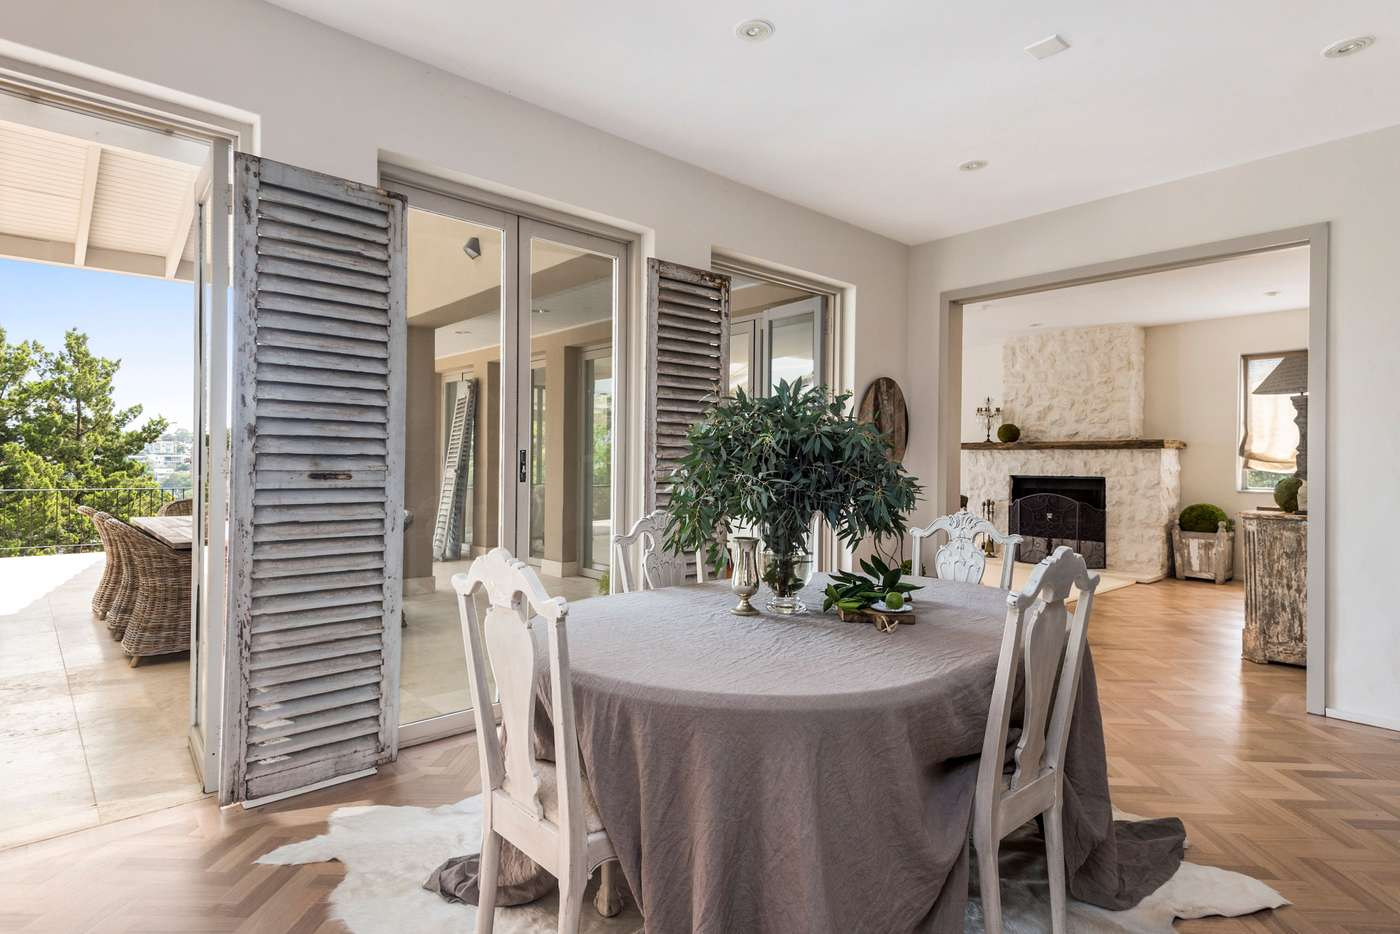 Sixth view of Homely house listing, 25 Wyong Road, Mosman NSW 2088